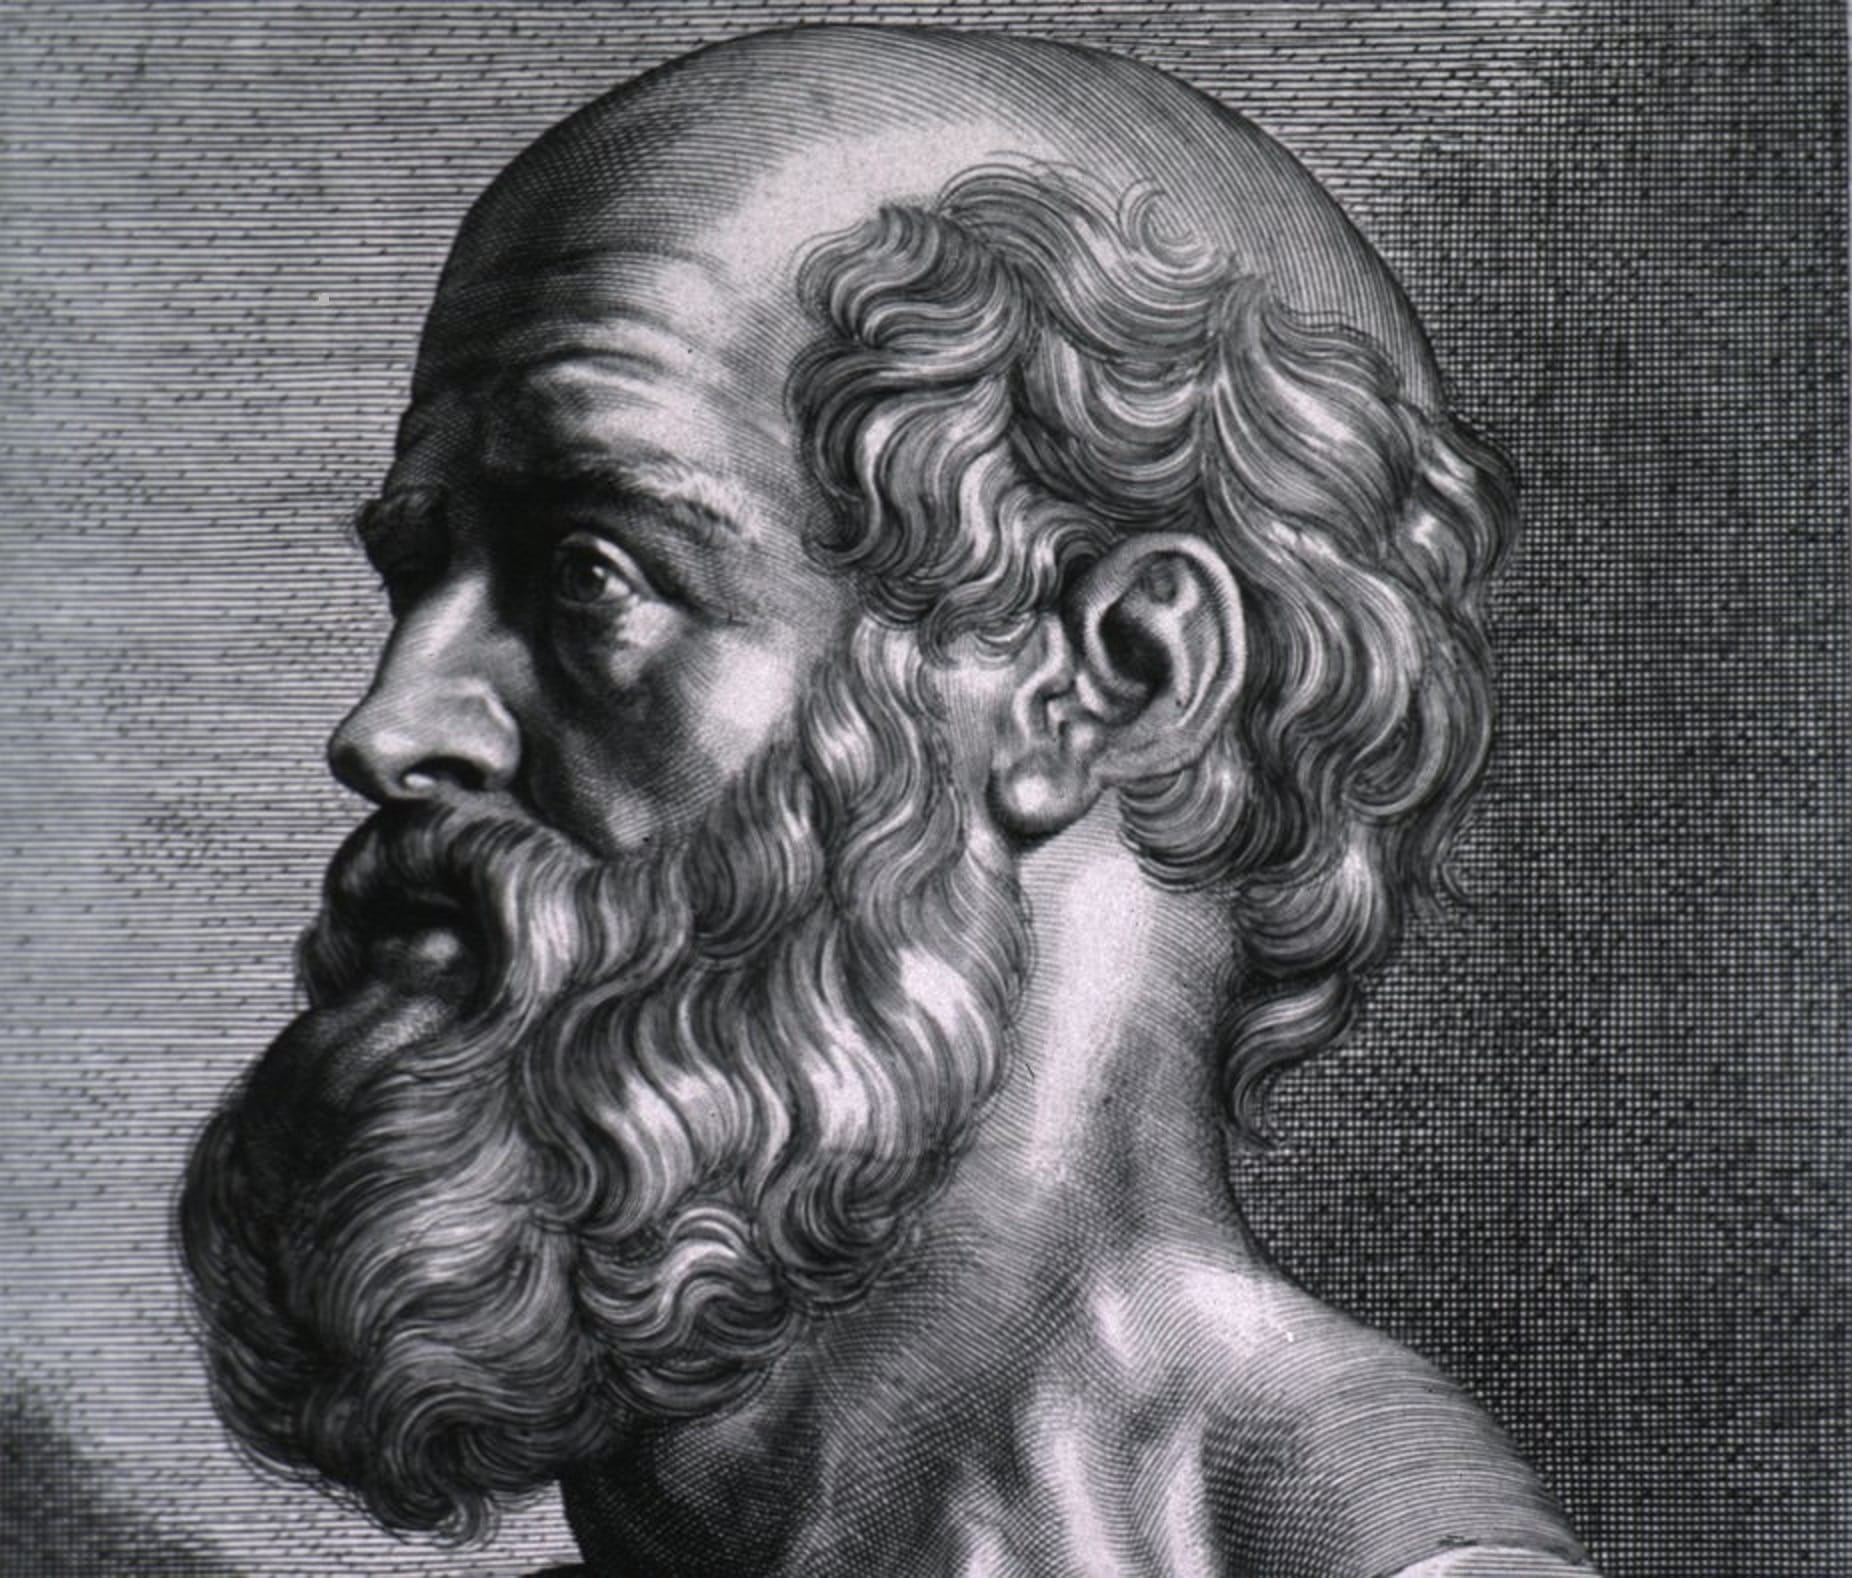 Hippocrates, the father of medicine